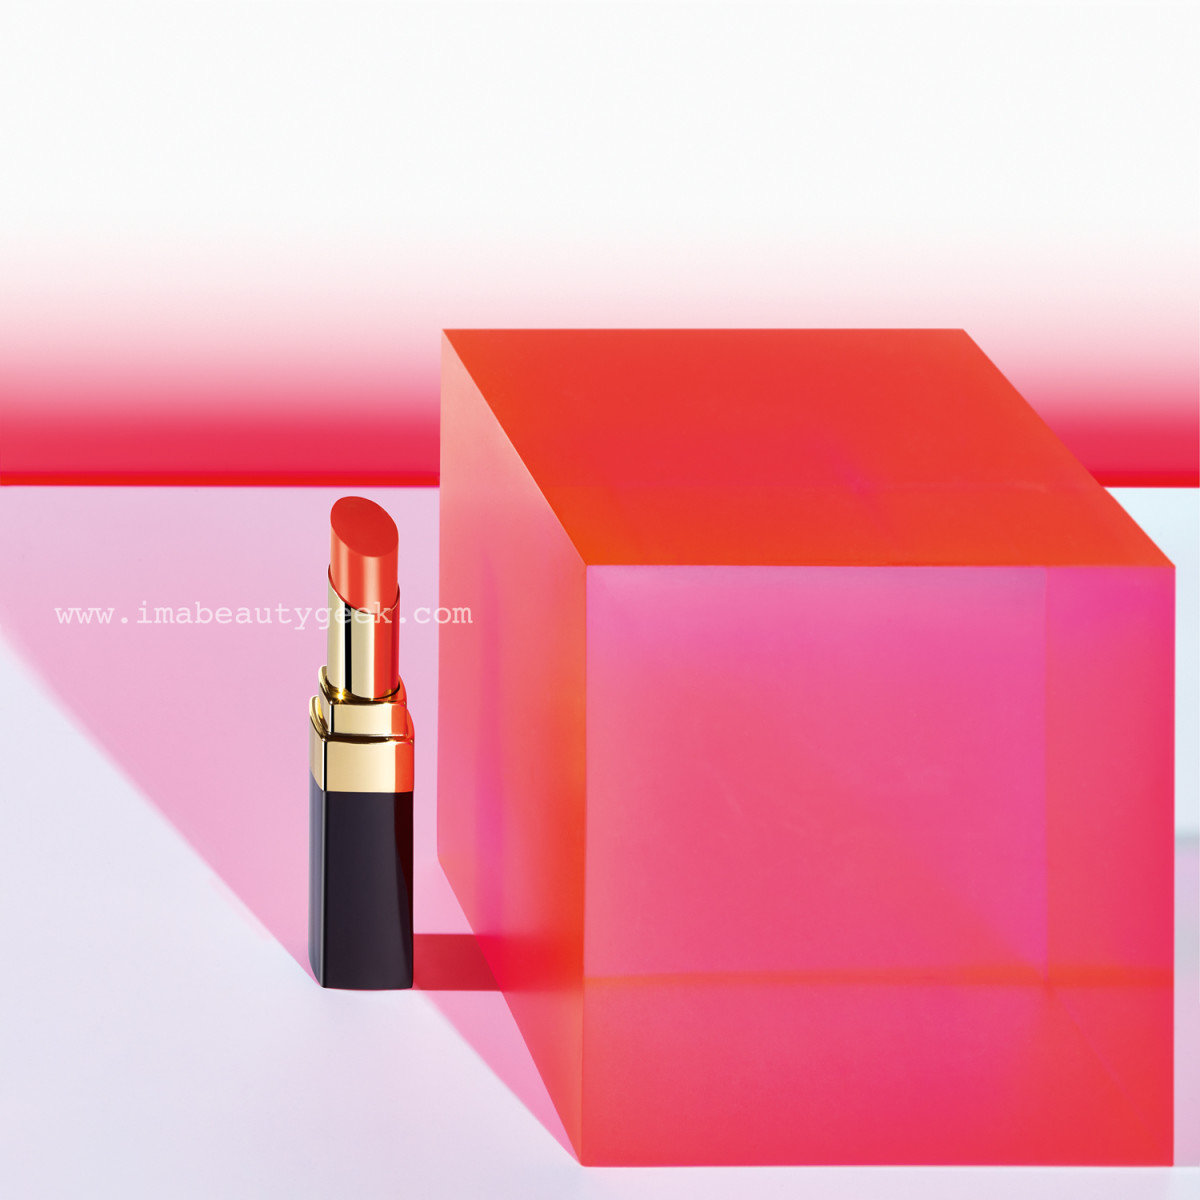 Chanel Spring 2015 LA Sunrise collection: Rouge Coco Shine in Shipshape